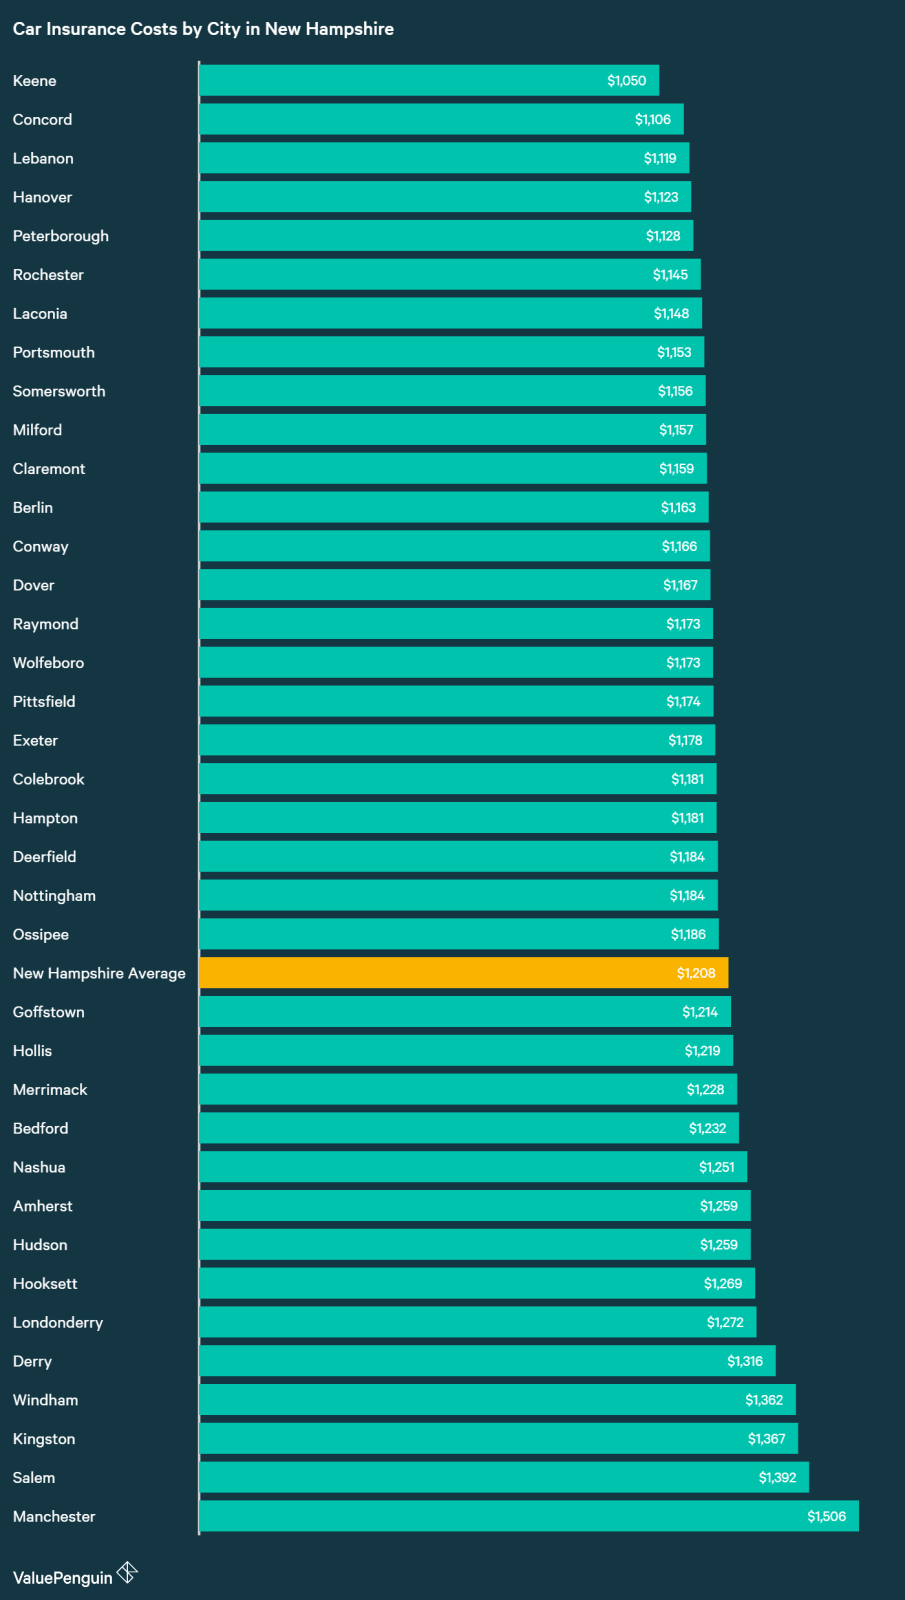 This graph displays and measures the average annual premiums in cities in New Hampshire against the state average and each other